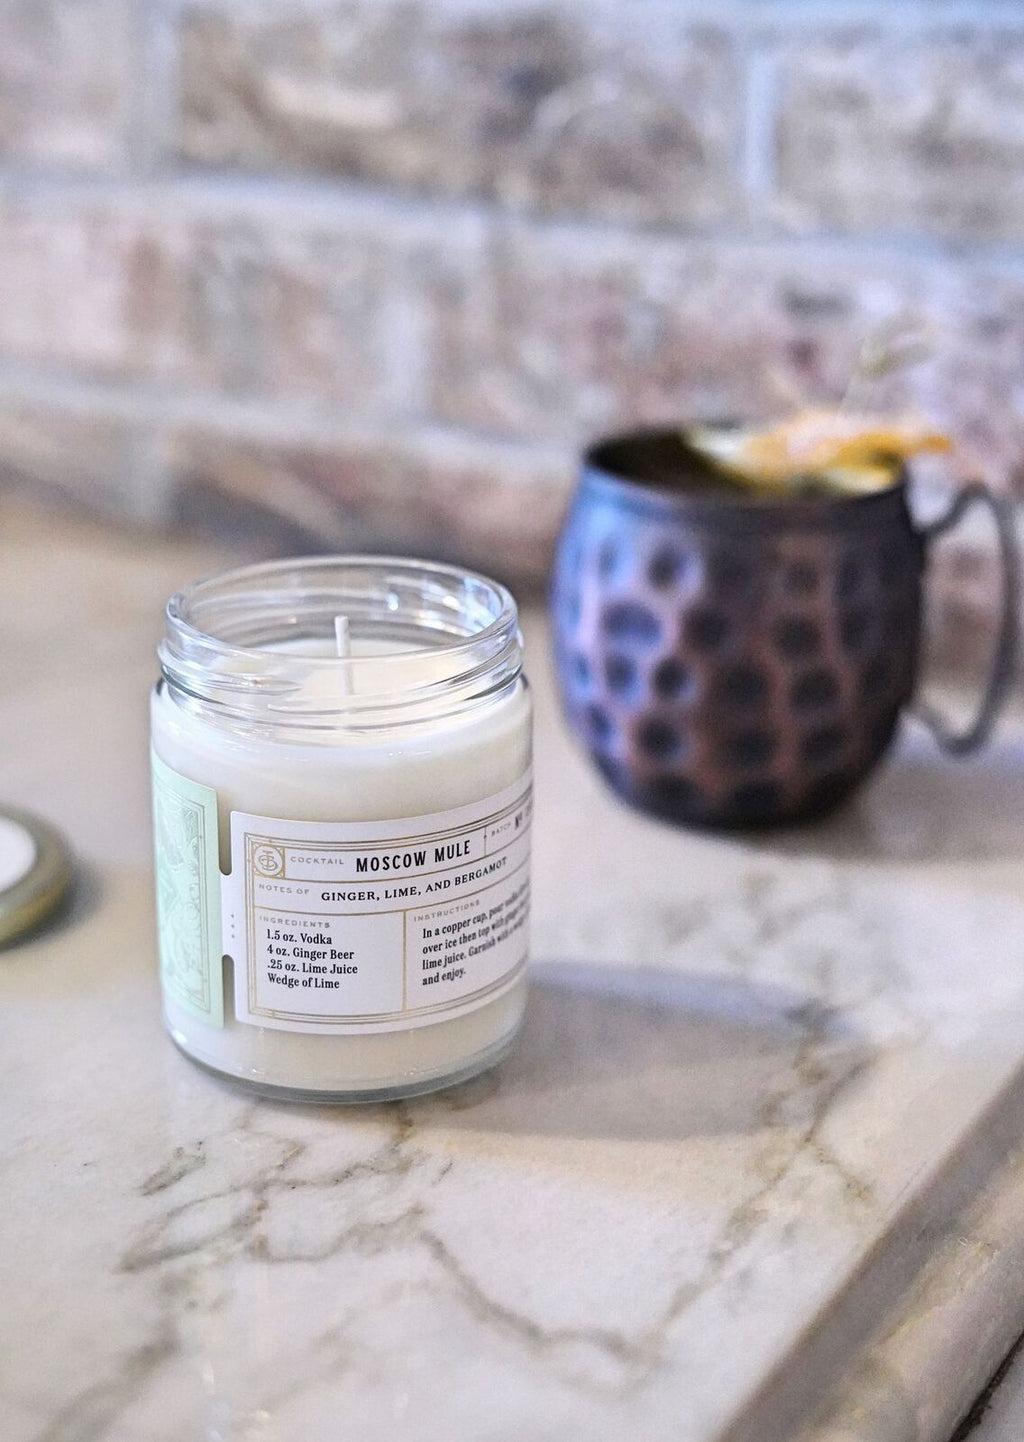 Moscow Mule Candle 7 oz